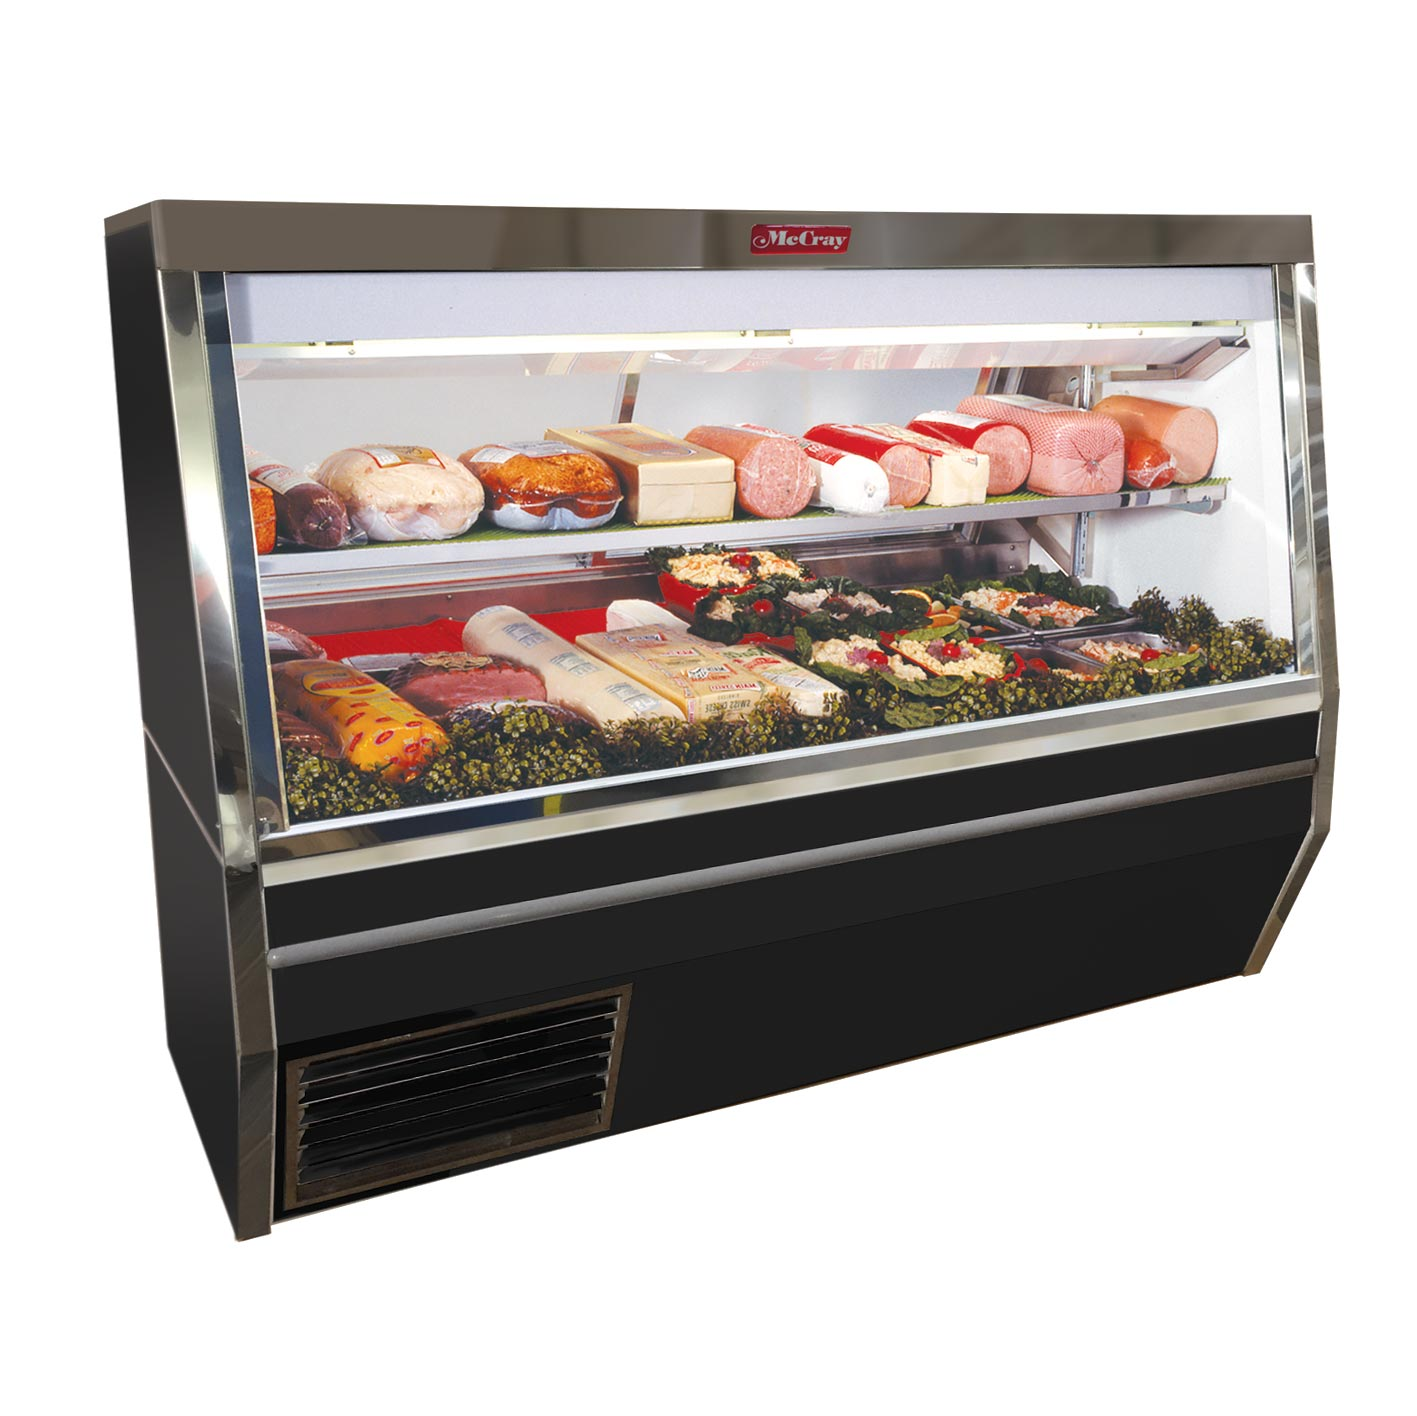 Howard-McCray SC-CDS34N-8-BE-LS-LED display case, refrigerated deli